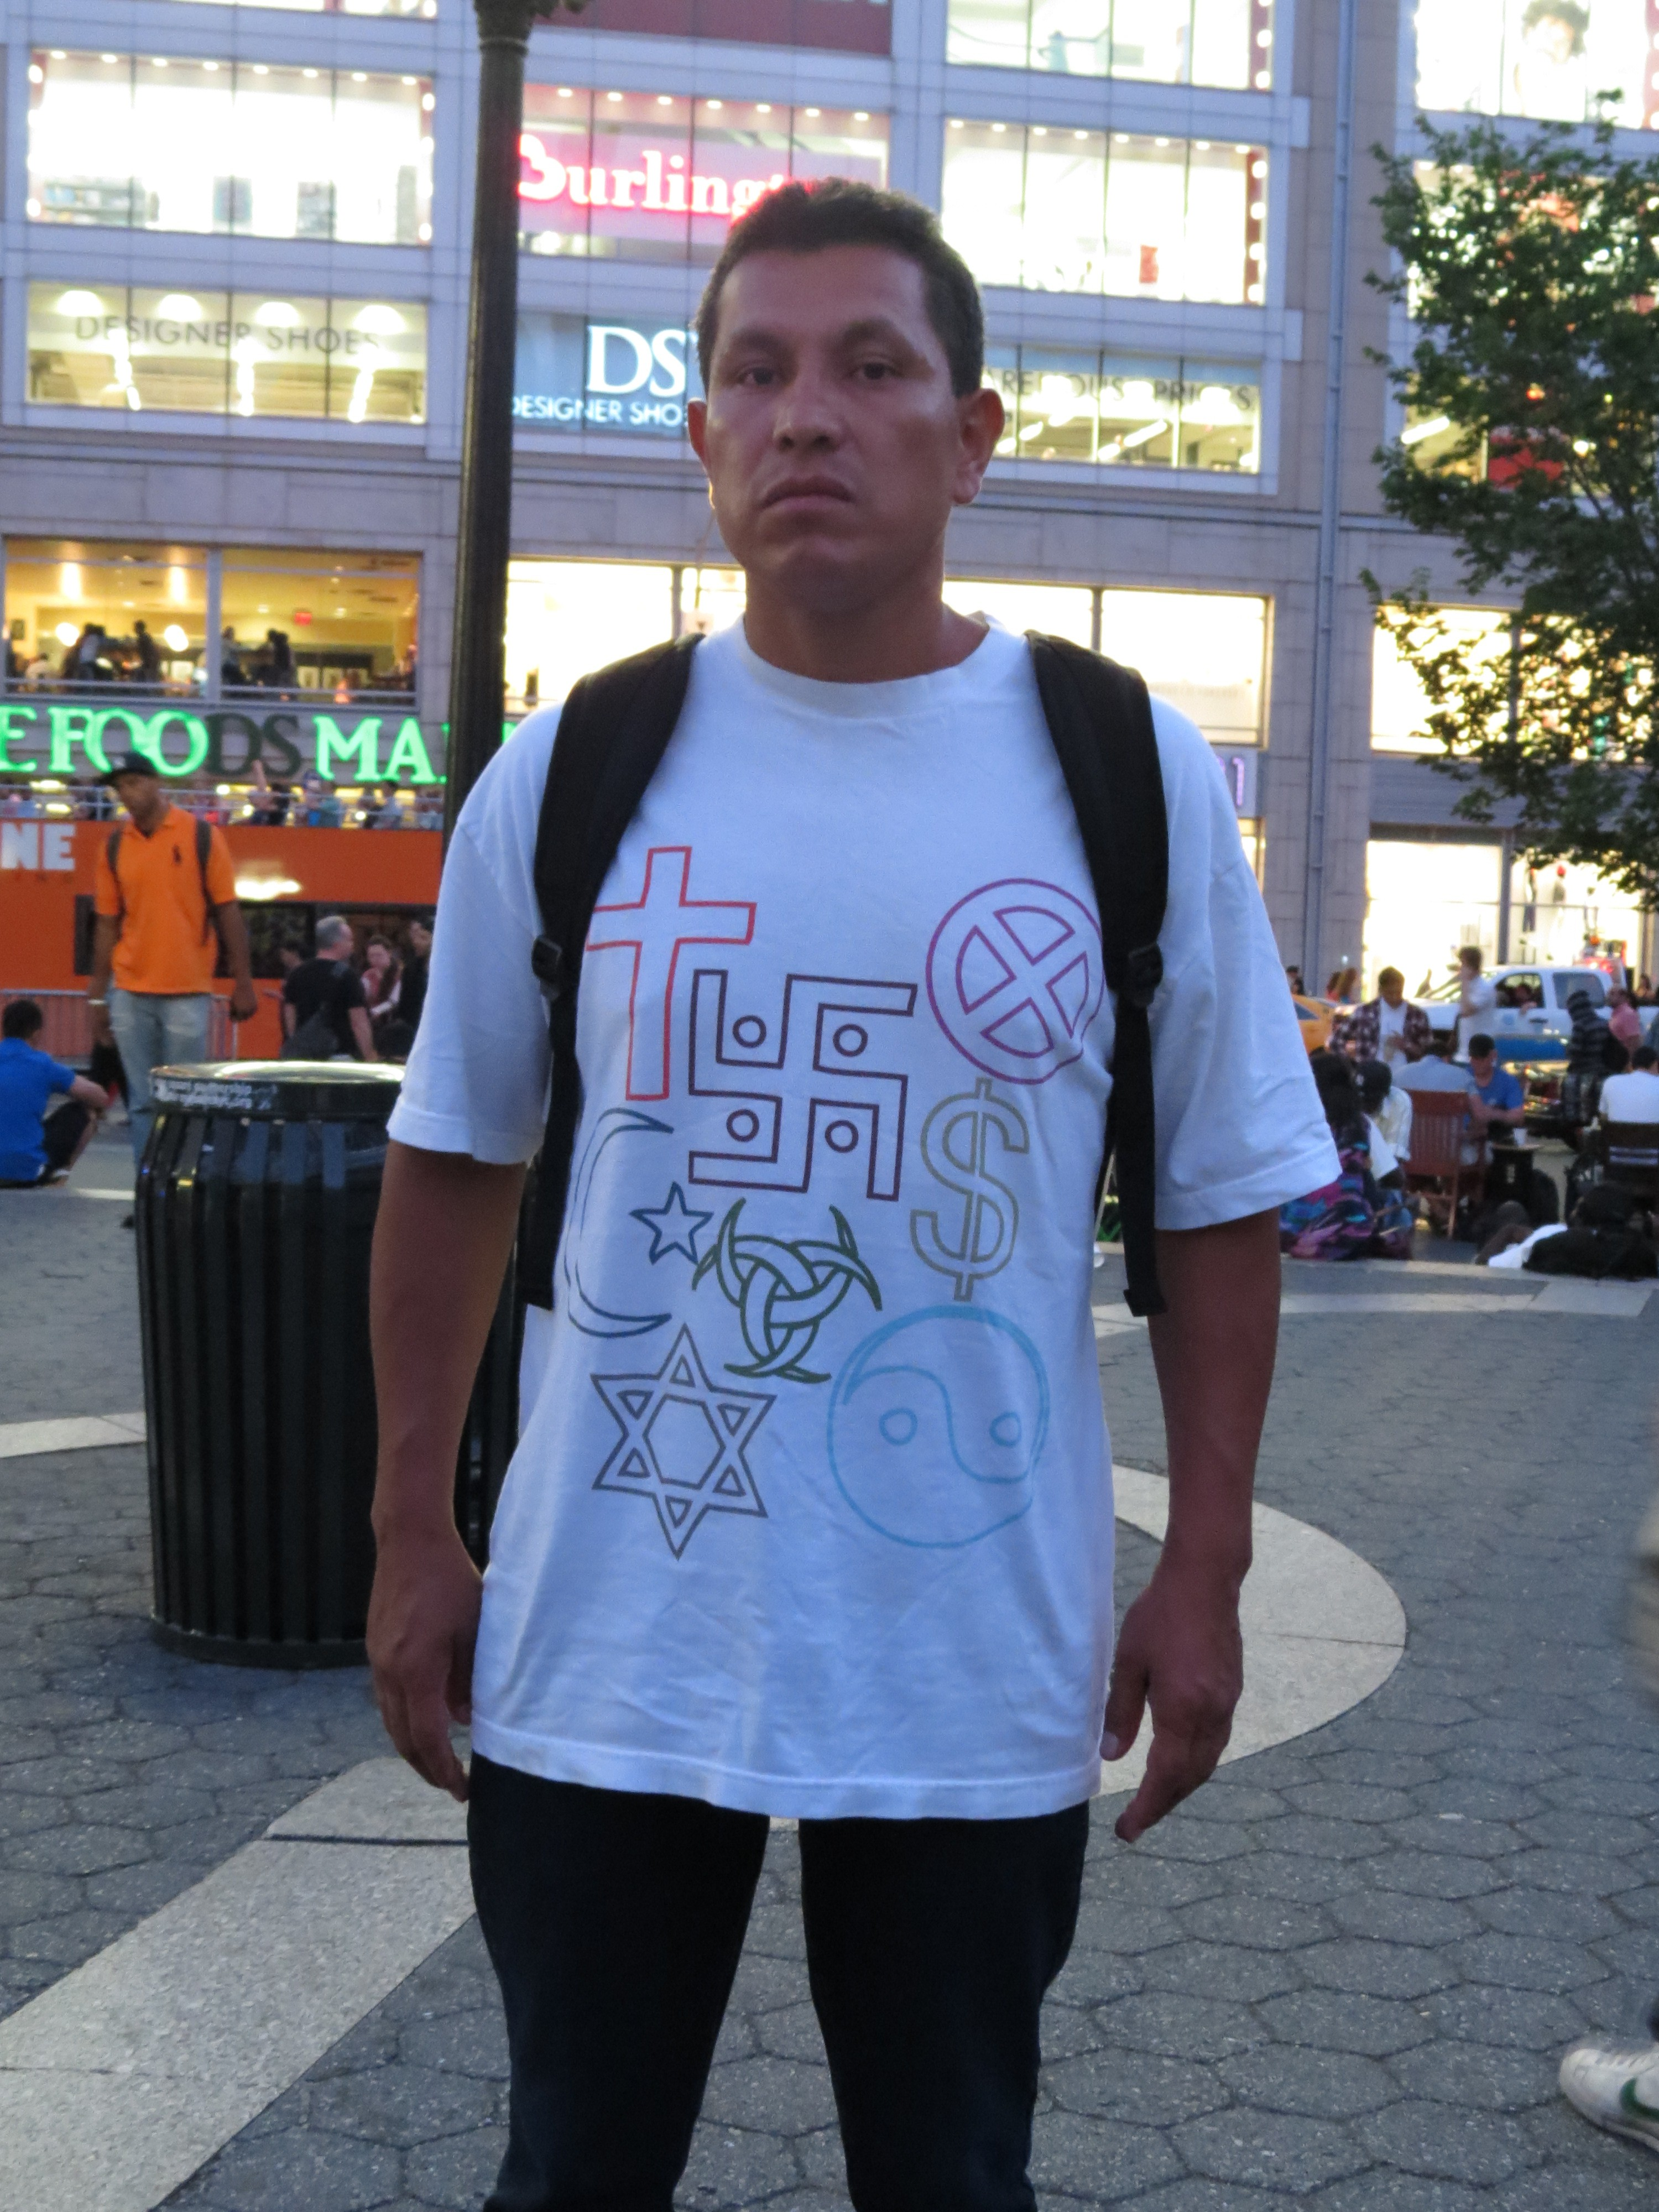 Man wearing shirt with Swastika & other symbols